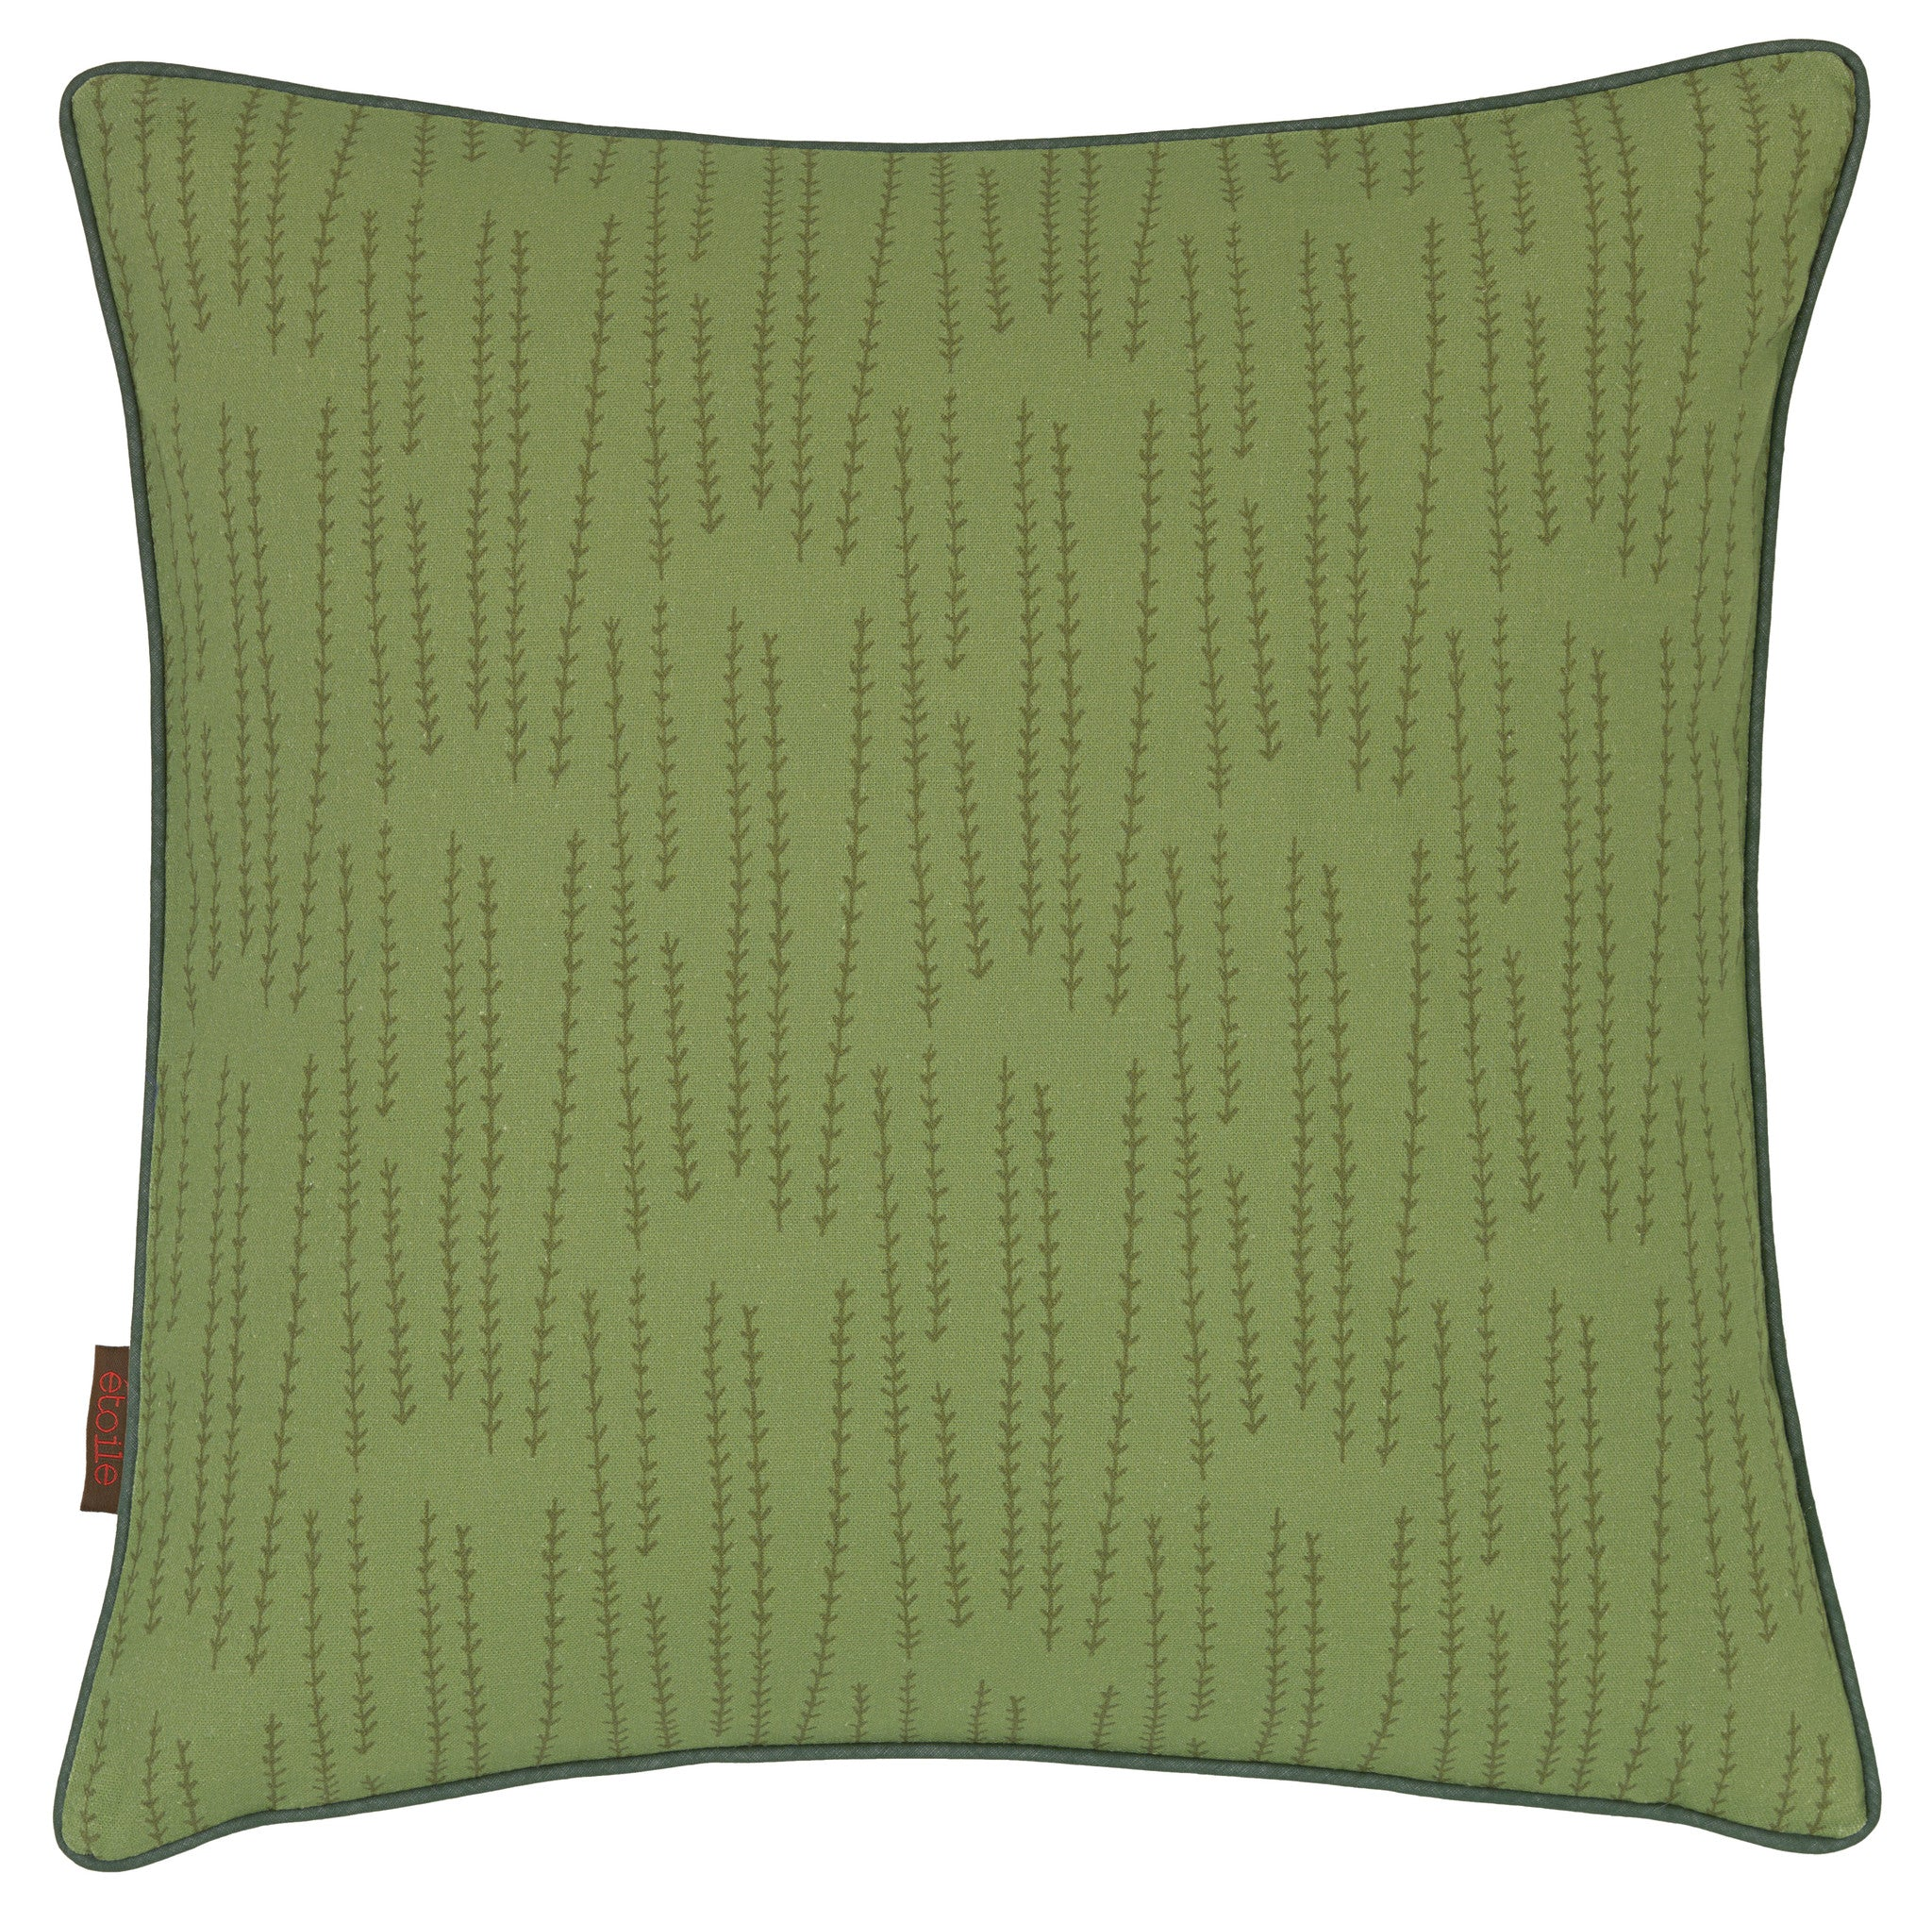 Graphic Rosemary Pattern Linen Union Printed Cushion in Avocado Green 45x45cm